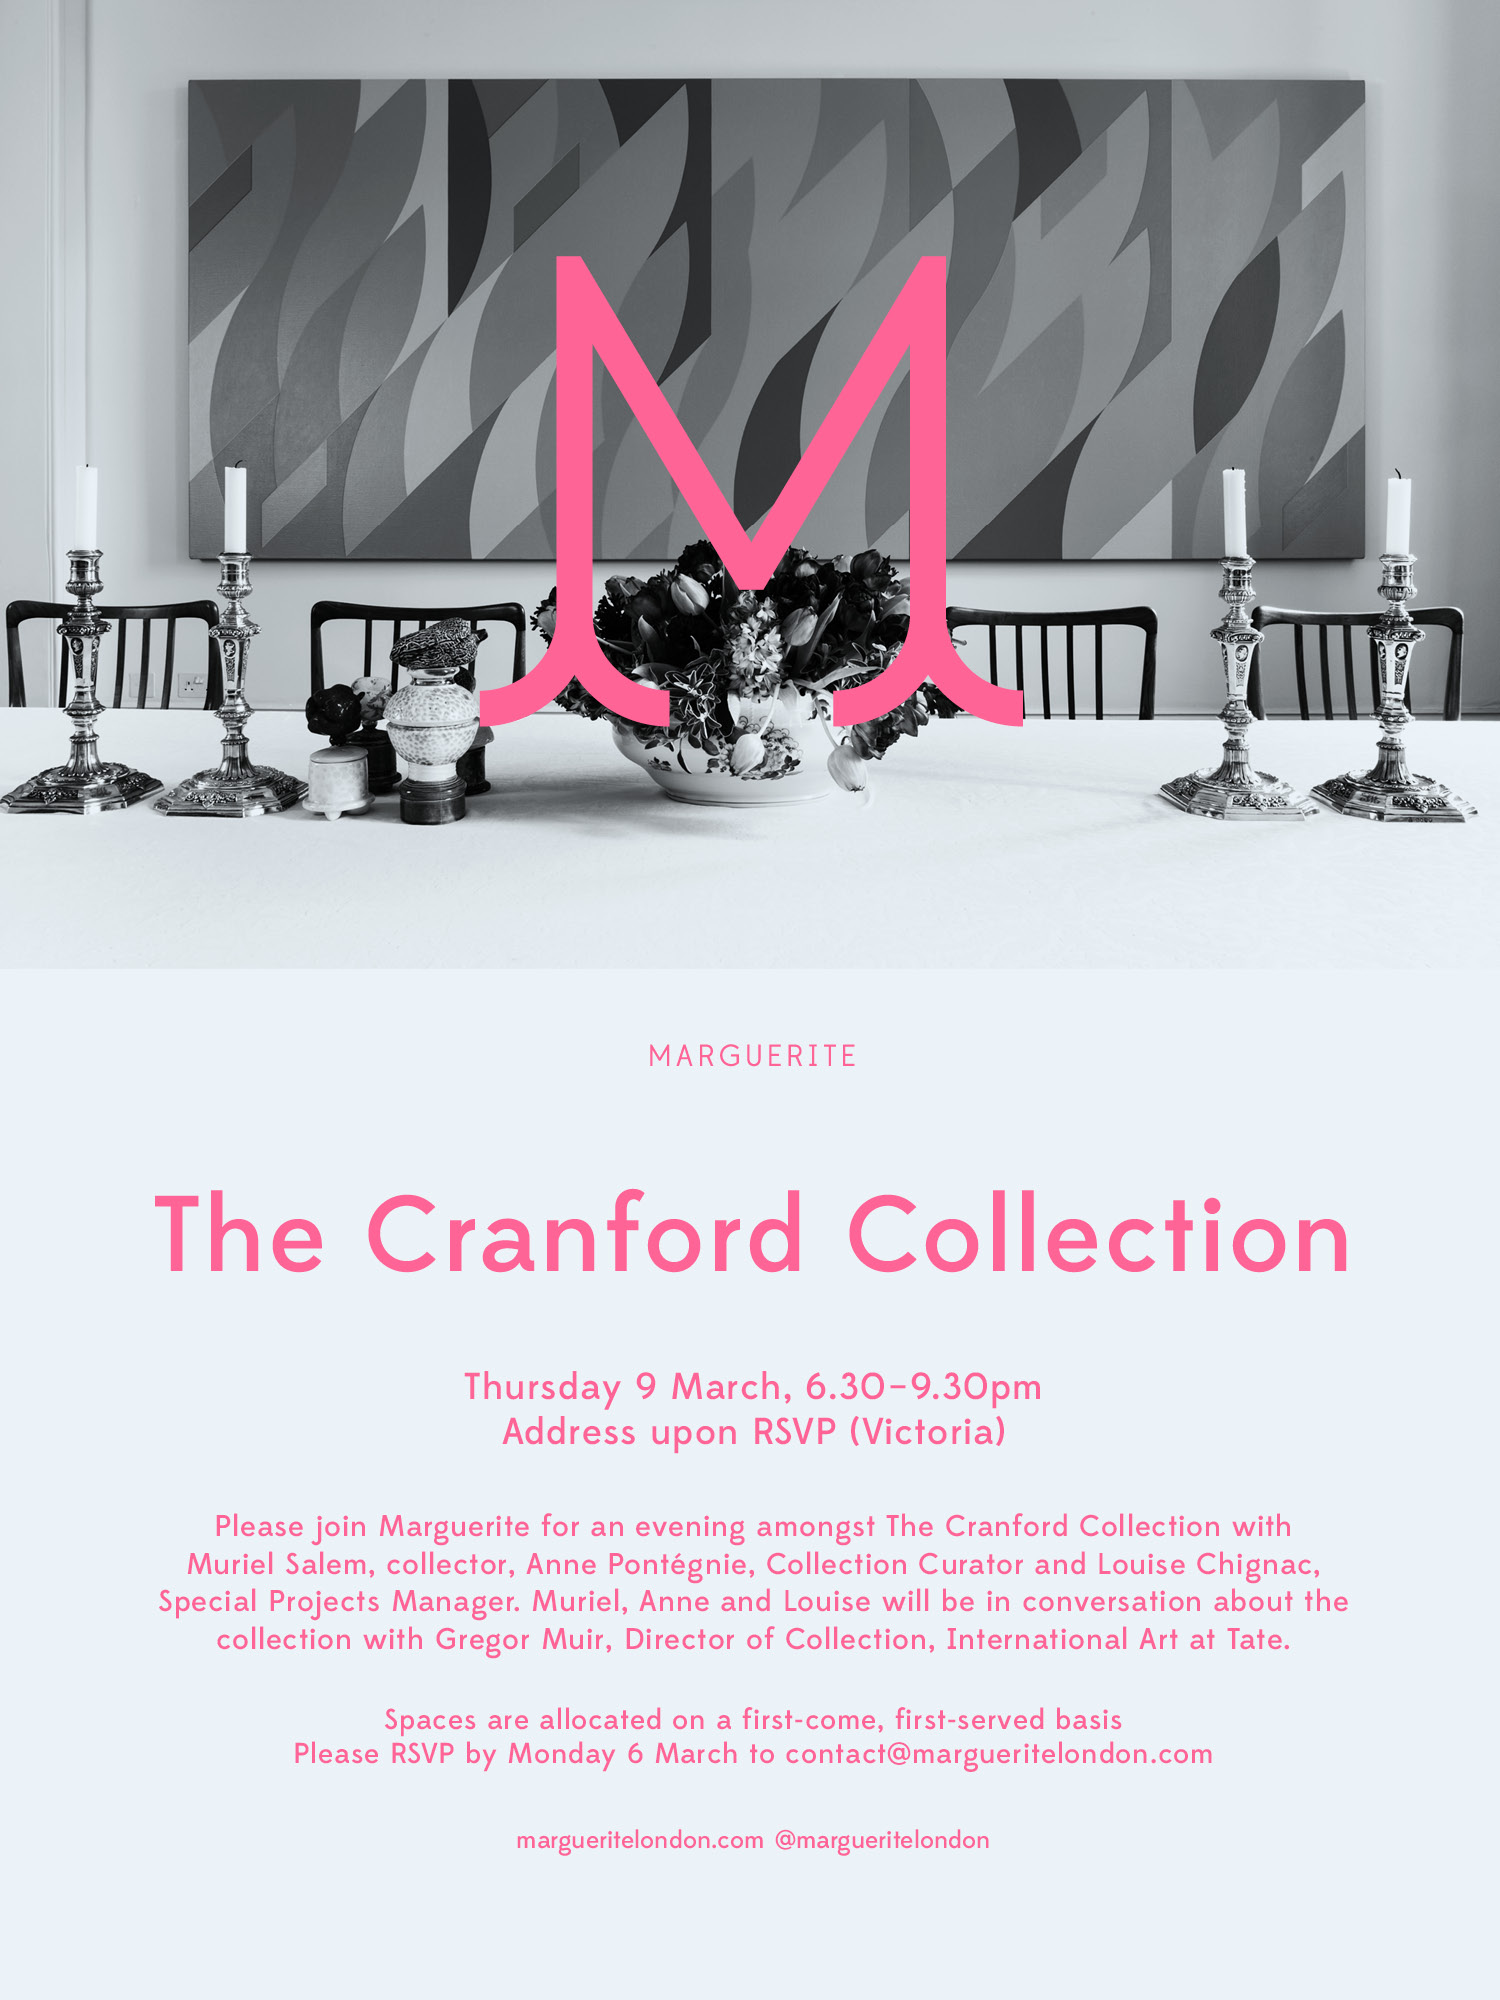 Marguerite Invitation to The Cranford Collection, Thursday 9 March 2017